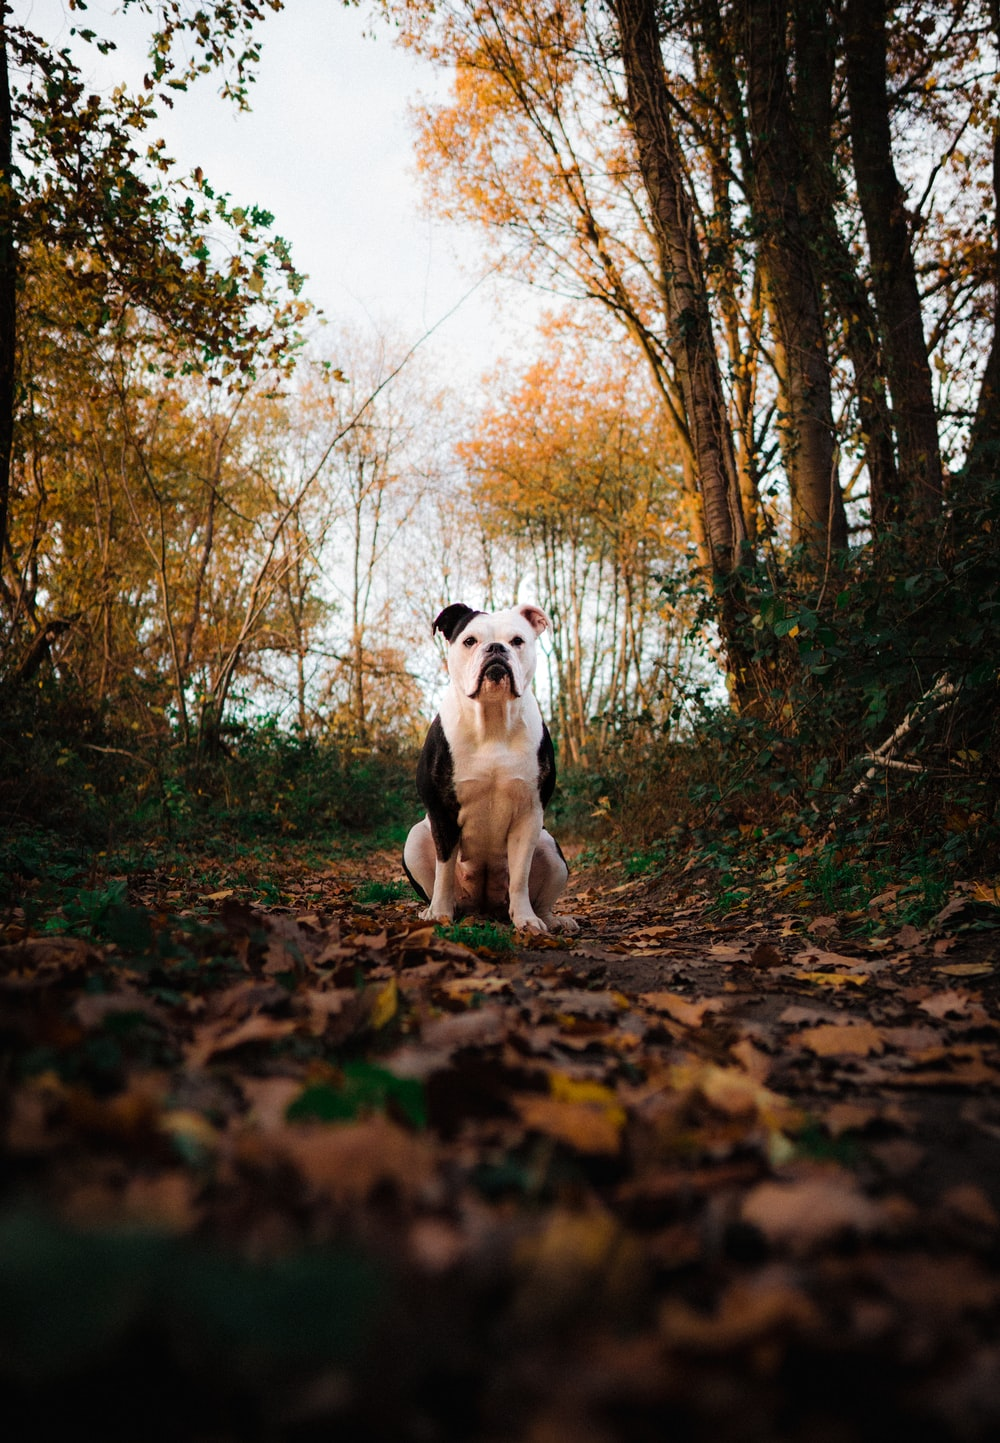 white and brown short coated dog on brown dried leaves